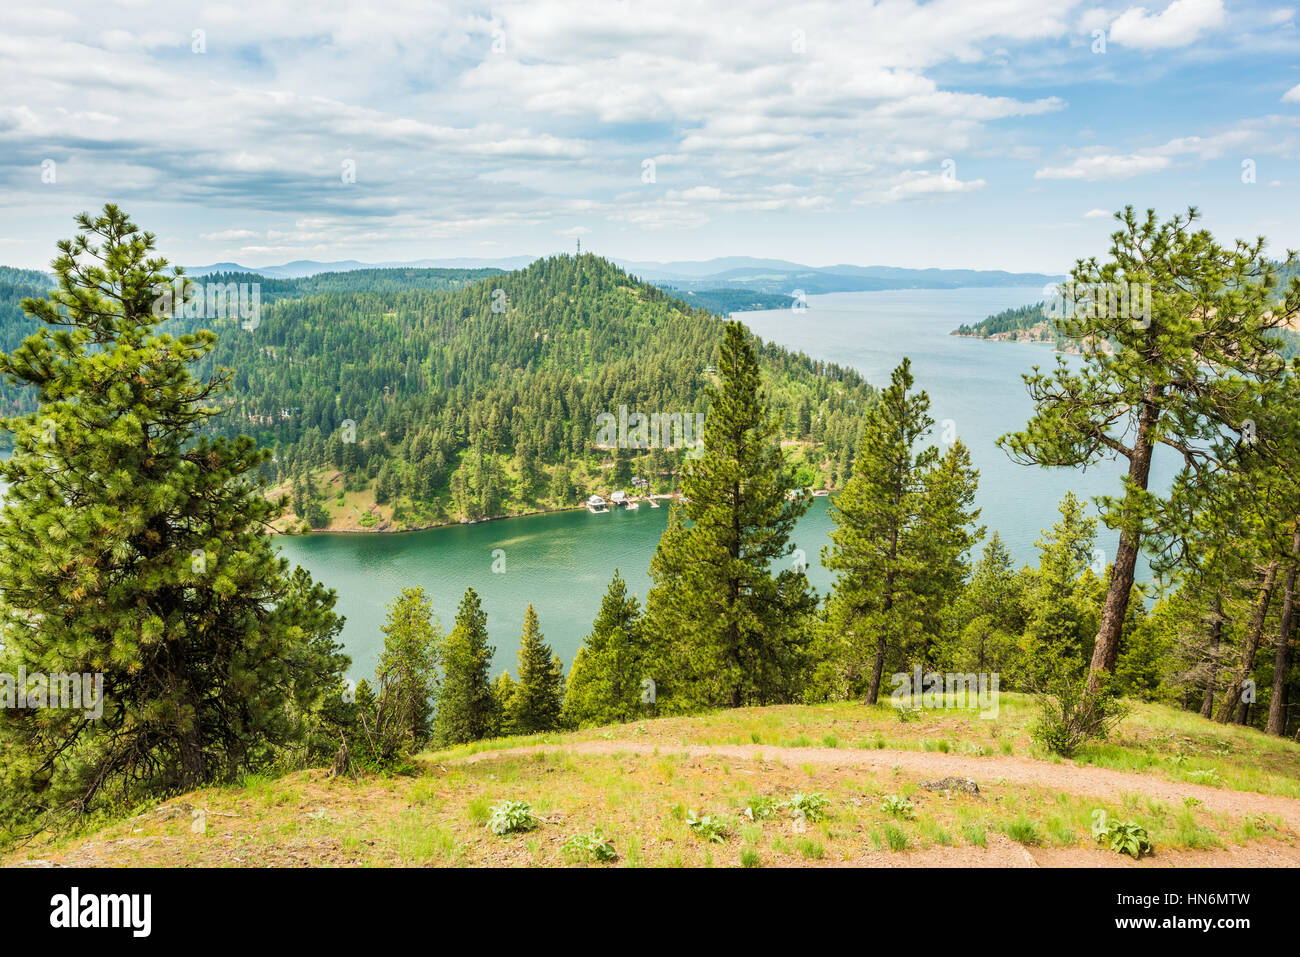 View of Coeur d'Alene lake from mountains with pine trees in Idaho from Mineral Ridge trail - Stock Image